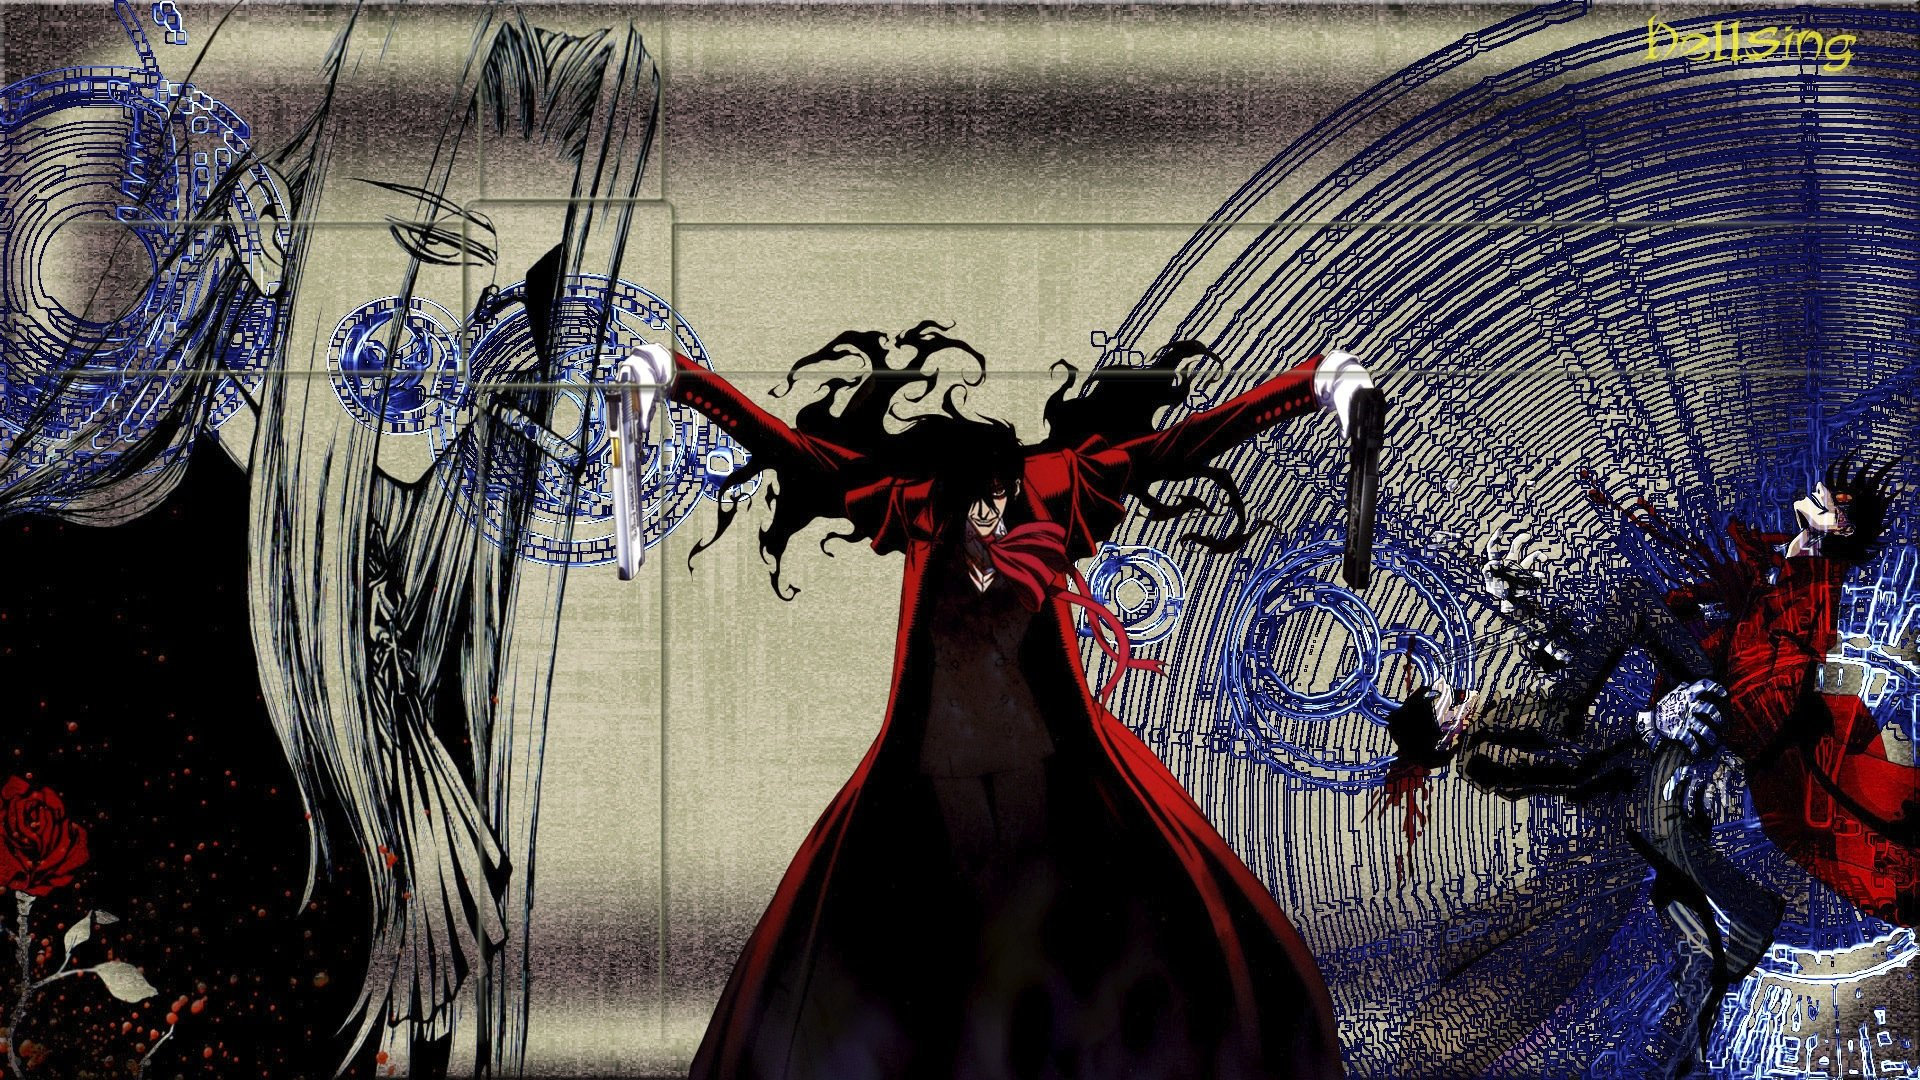 Download full hd 1920x1080 Hellsing desktop background ID:330063 for free